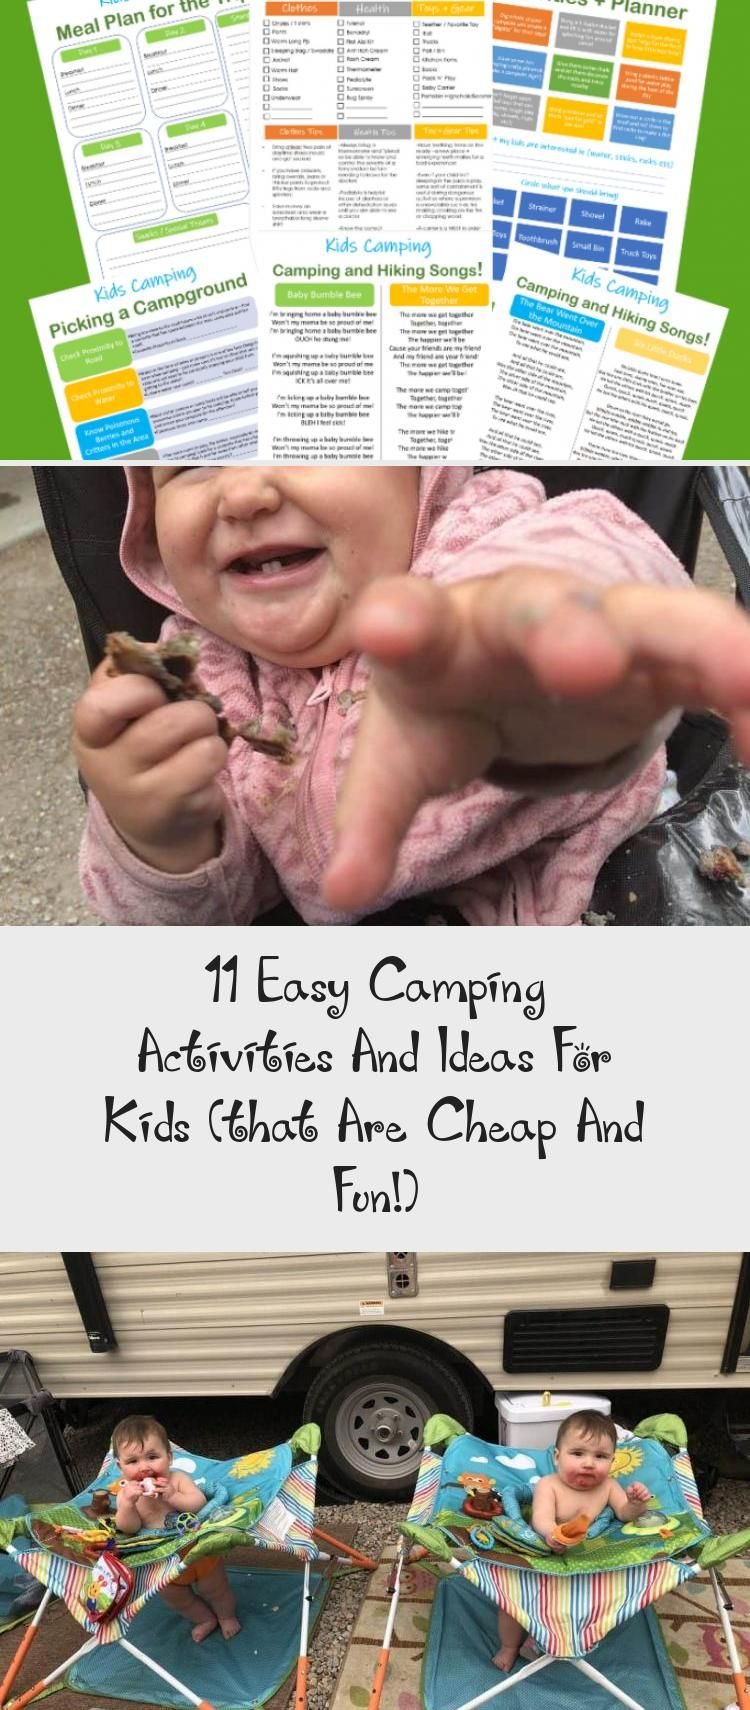 11 Easy Camping Activities And Ideas For Kids (that Are Cheap And Fun!) Keep a toddler busy while f